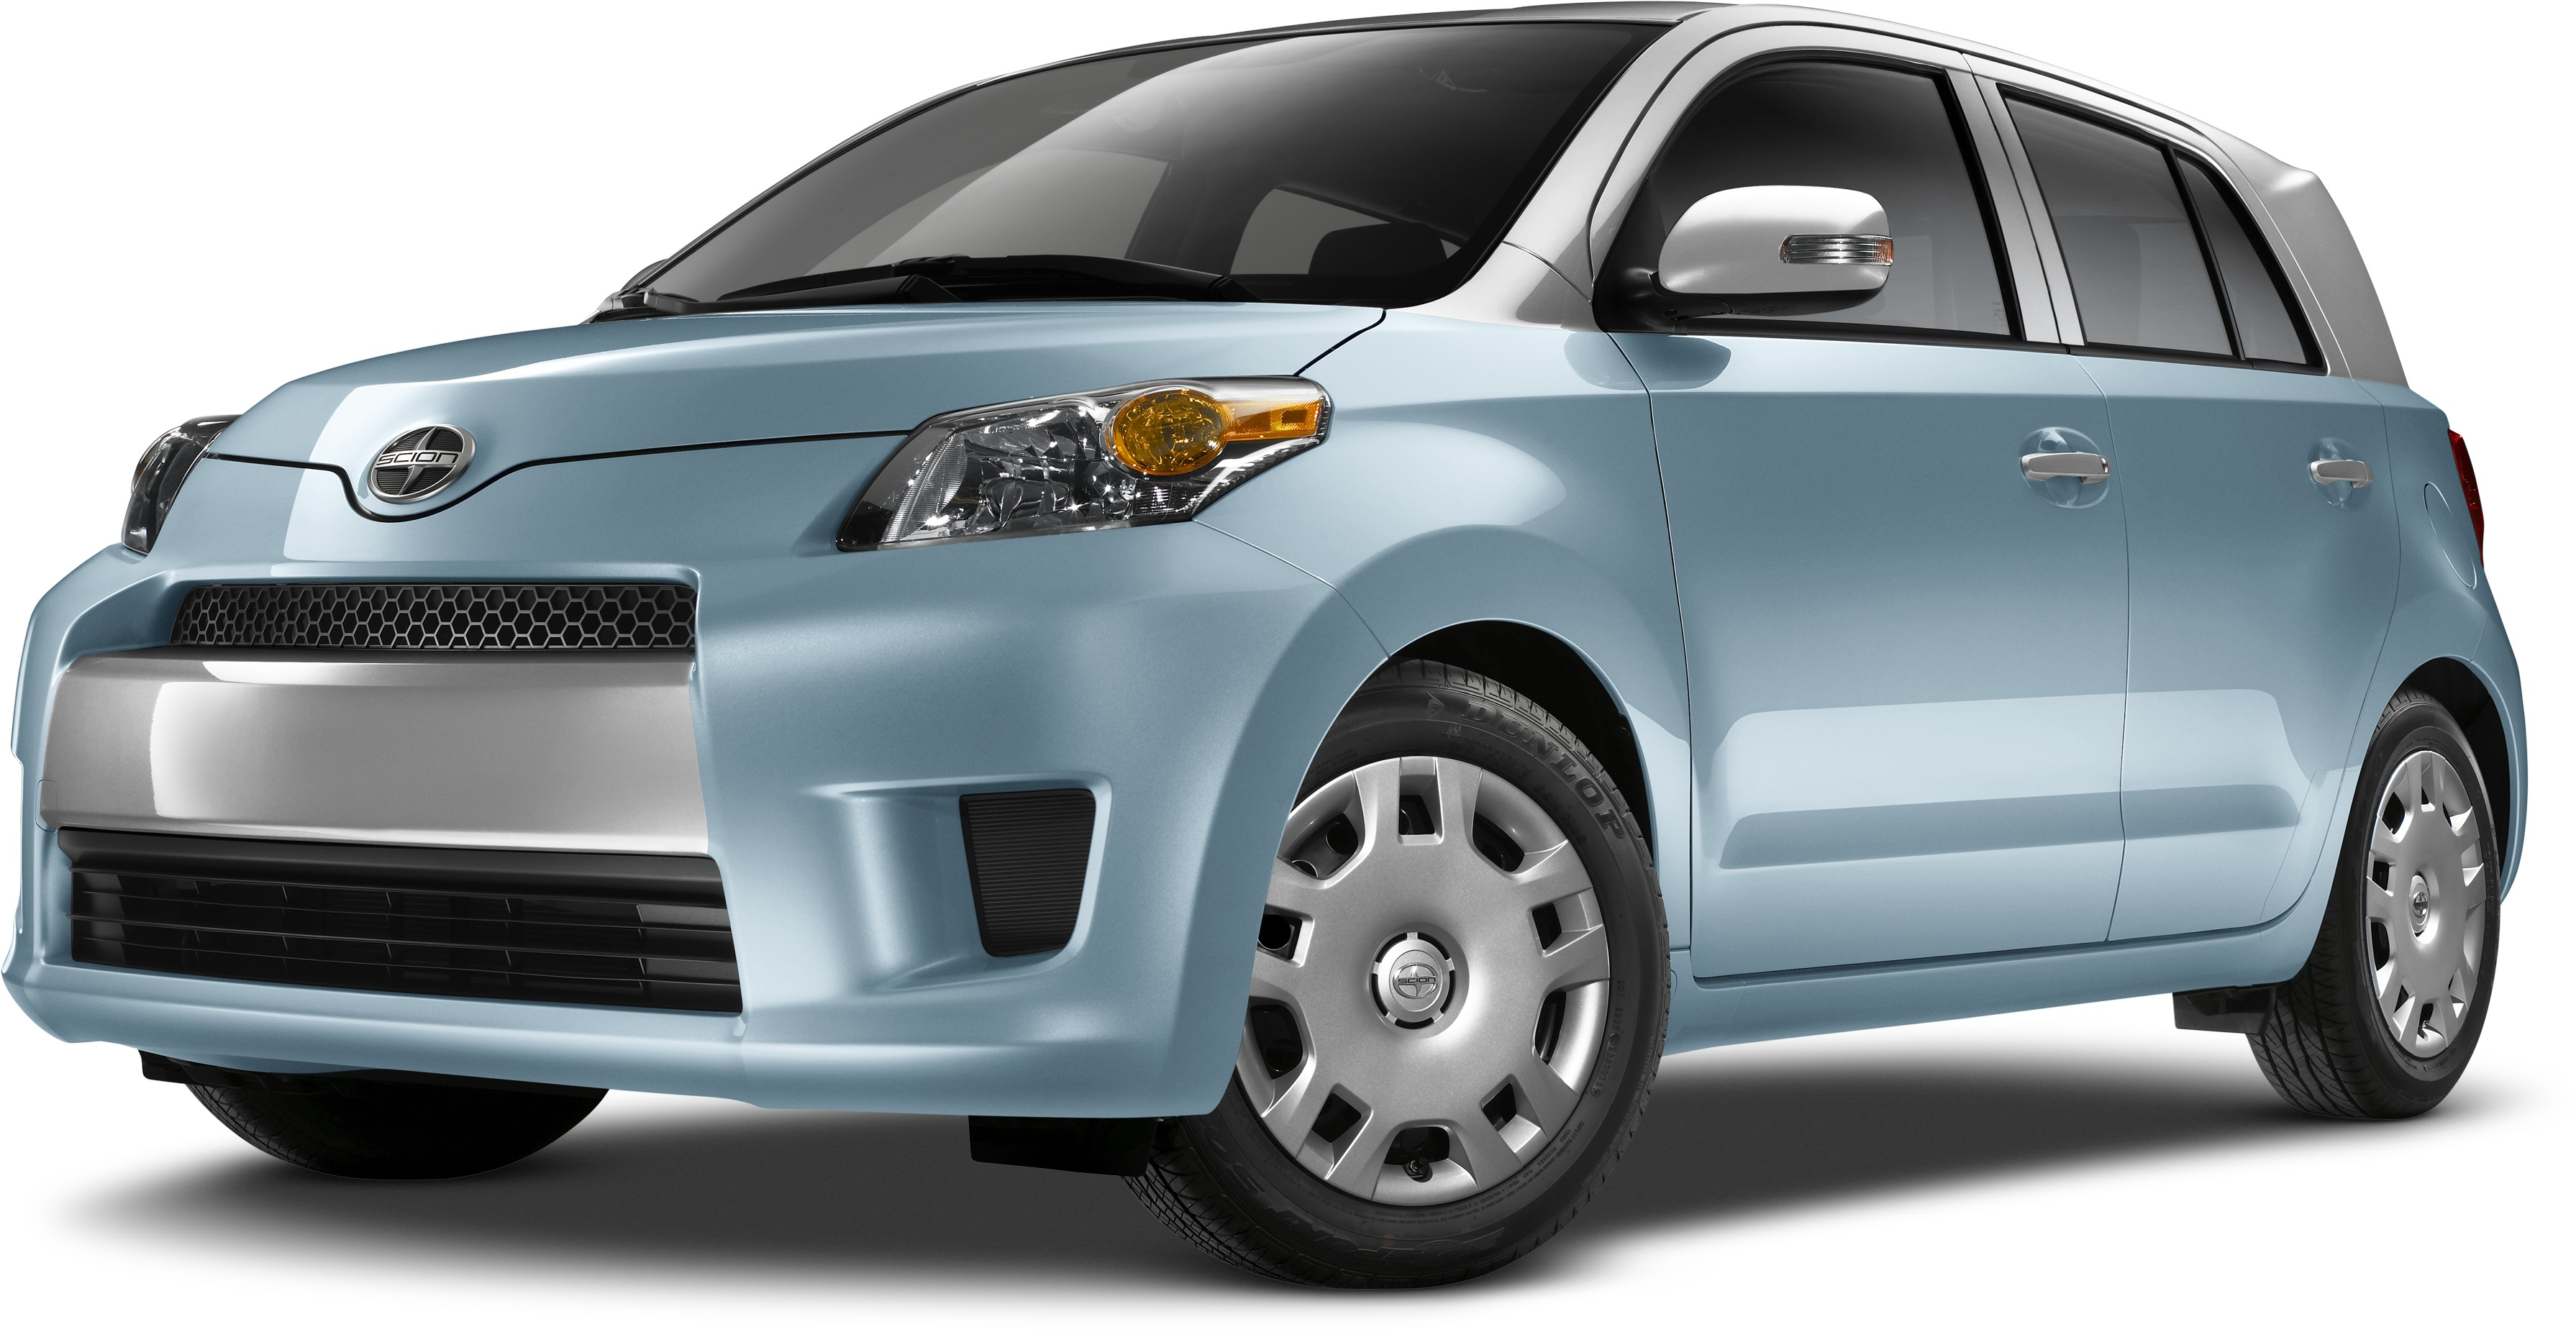 2014 Scion Xd #1